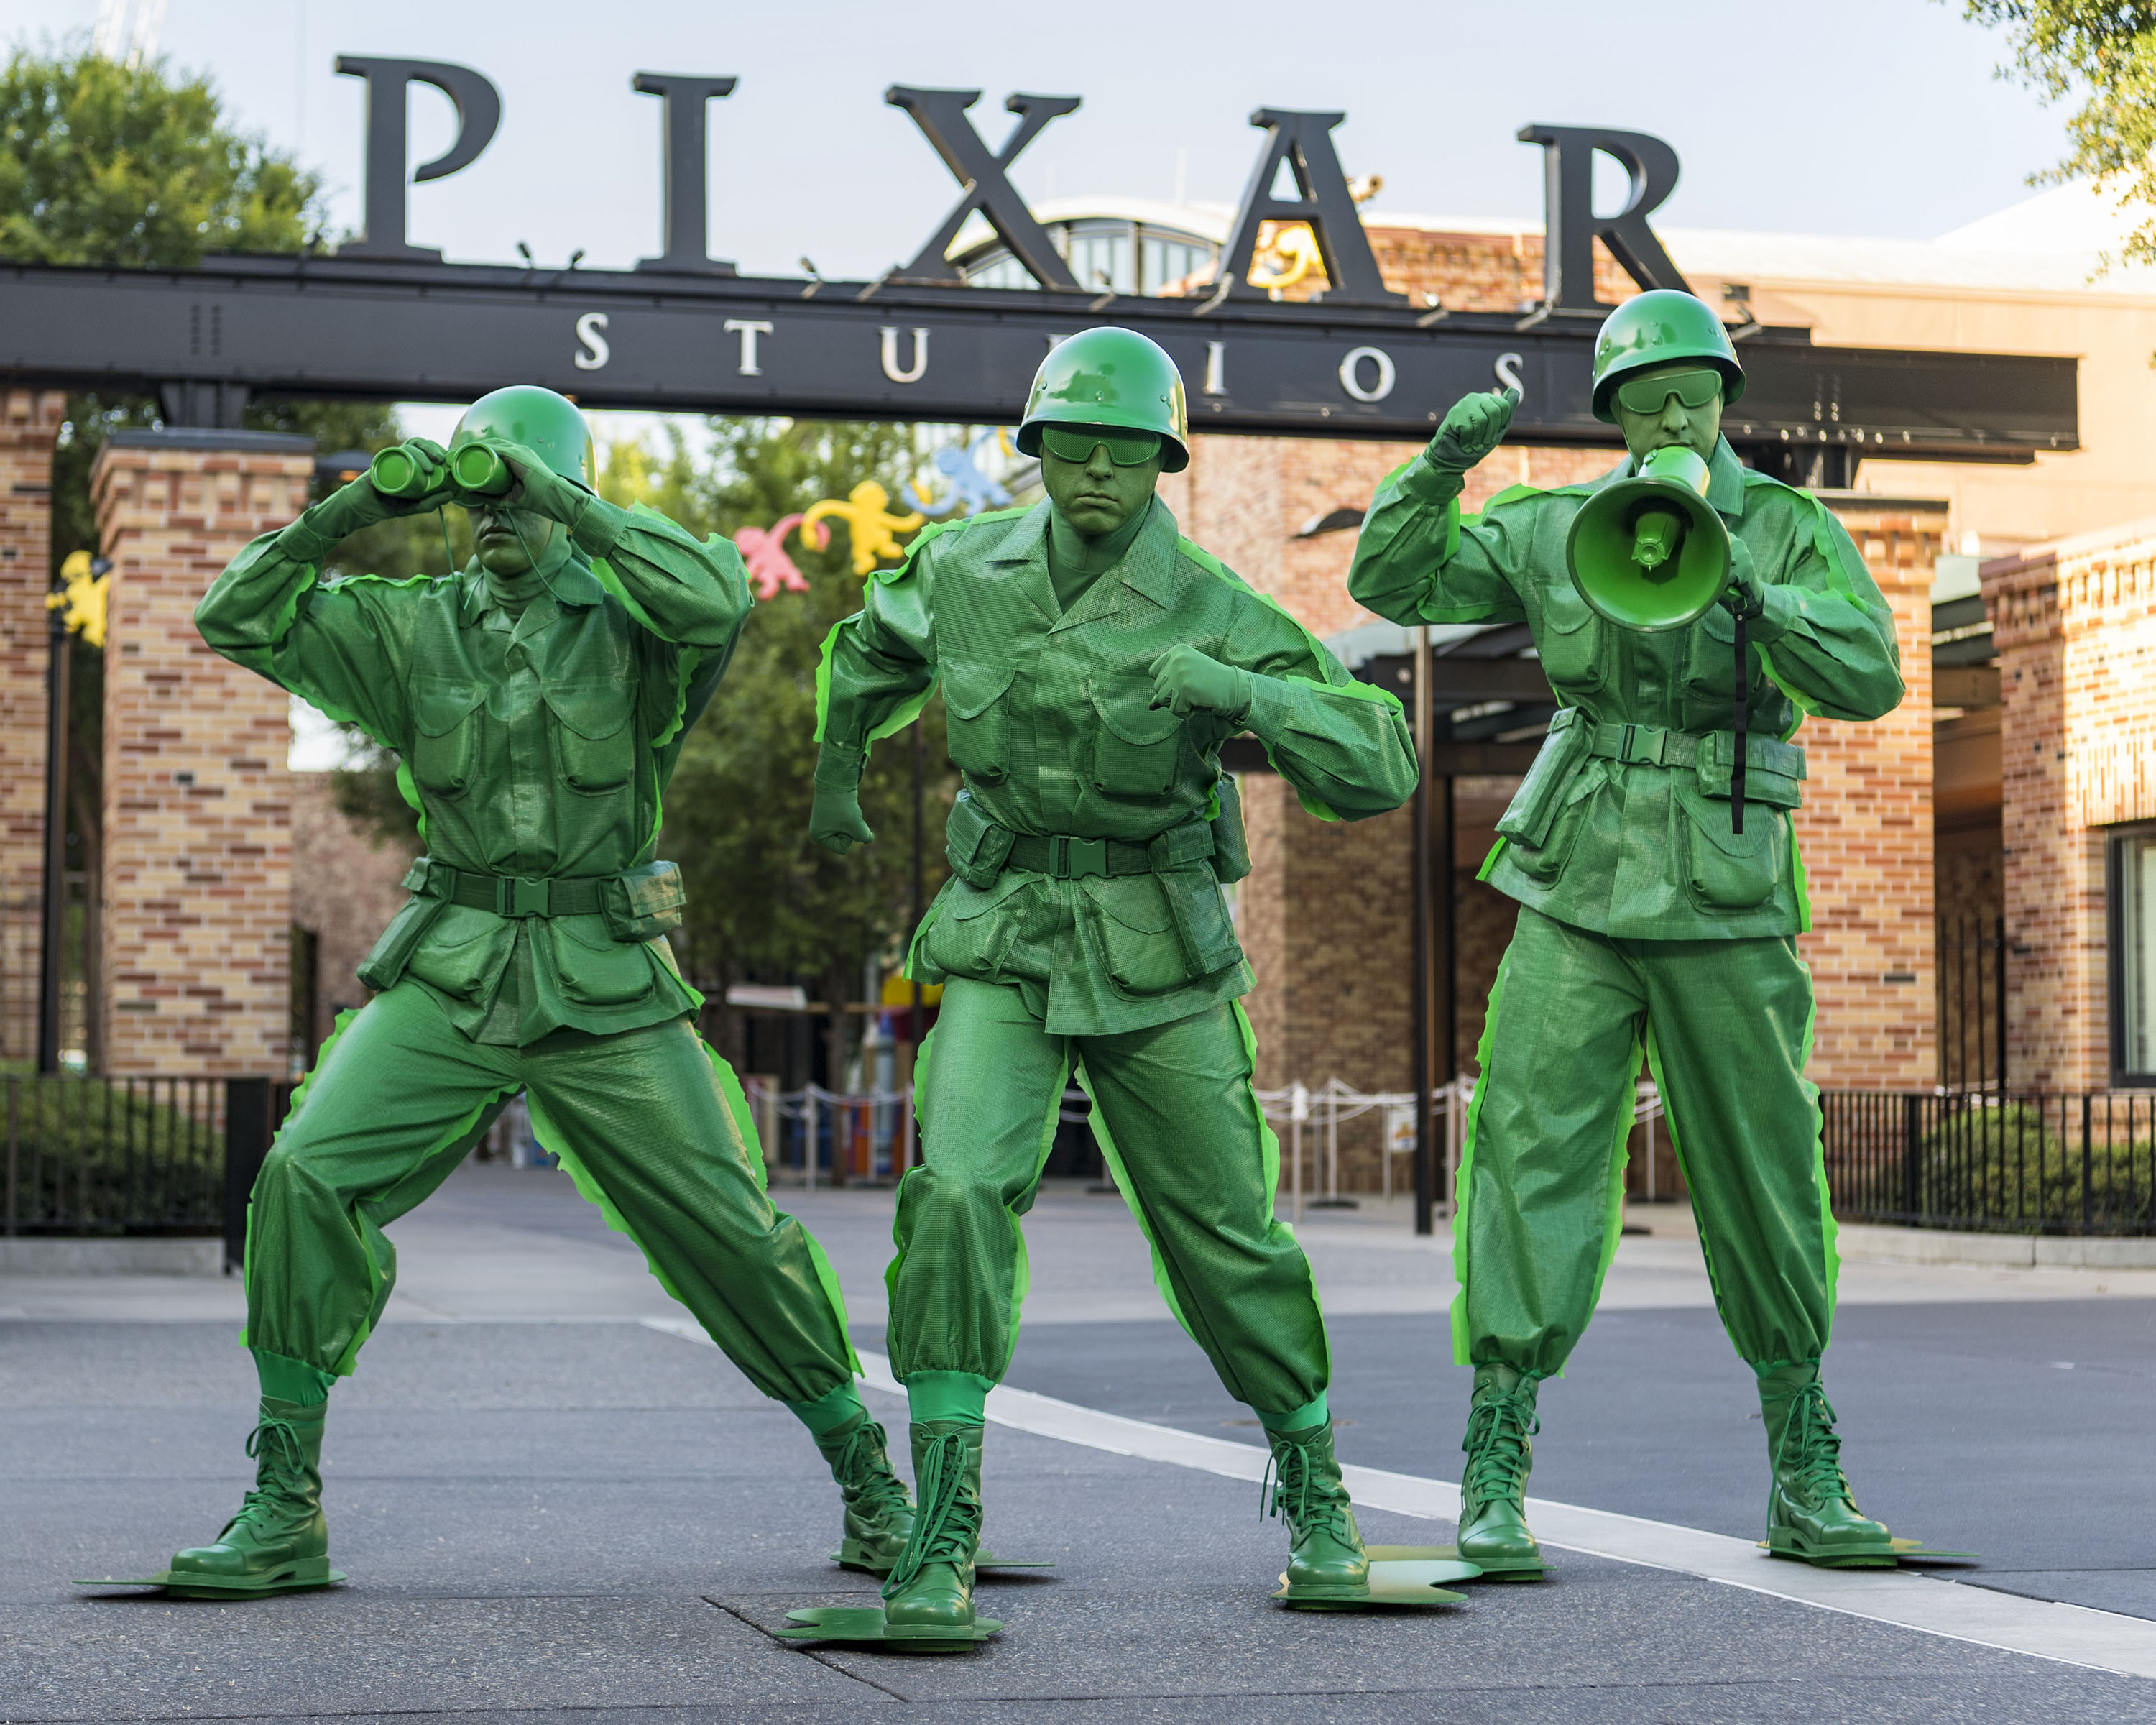 """Slide 7 of 15: Sarge and the Green Army Men from the hit Disney¥Pixar """"Toy Story"""" films will interact with guests in the new Toy Story Land when it opens June 30 at Walt Disney World Resort. The Green Army Men will """"toy"""" with guests, leading them to a fun and interactive boot camp where potential recruits are tested in their abilities with Pixar balls and oversized crayons. Located at Disney's Hollywood Studios, the new 11-acre Toy Story Land will make guests feel like they have shrunk to the size of a toy in the setting of Andy's backyard. Guests will whoosh along on the family-friendly Slinky Dog Dash roller coaster, take a spin aboard Alien Swirling Saucers and score high on the midway at Toy Story Mania! (Matt Stroshane, photographer)"""